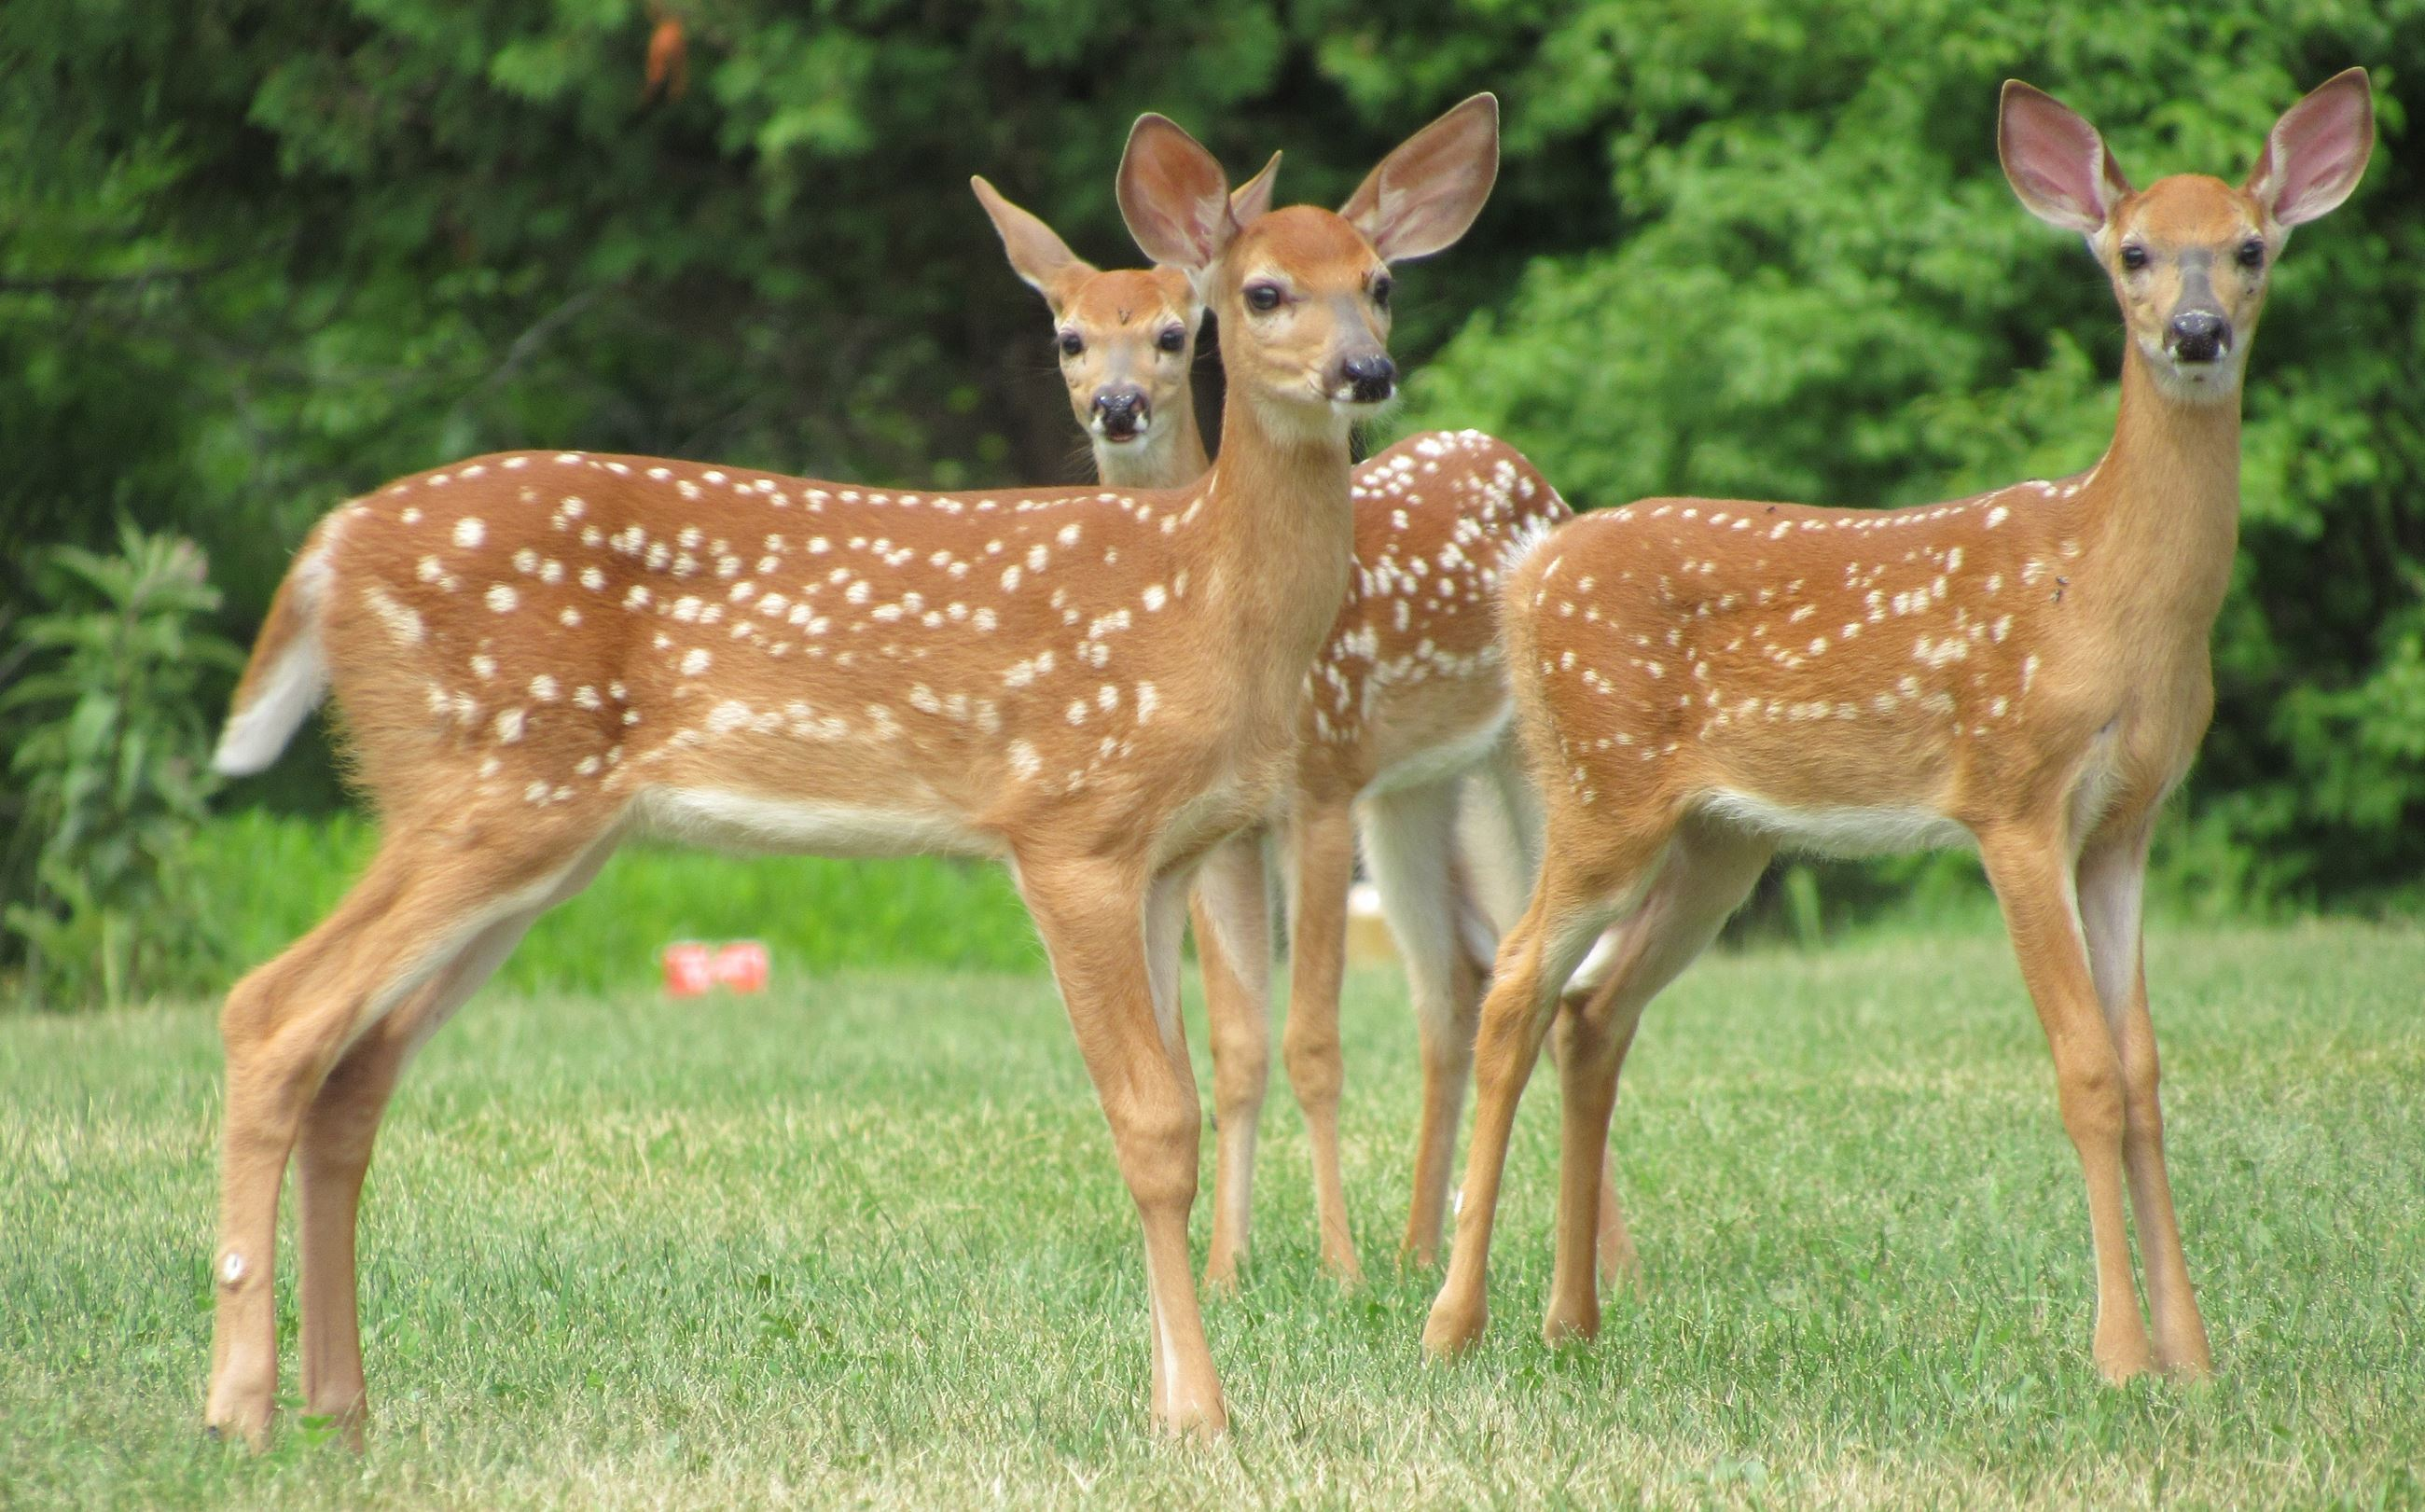 Three spotted fawns standing in a field